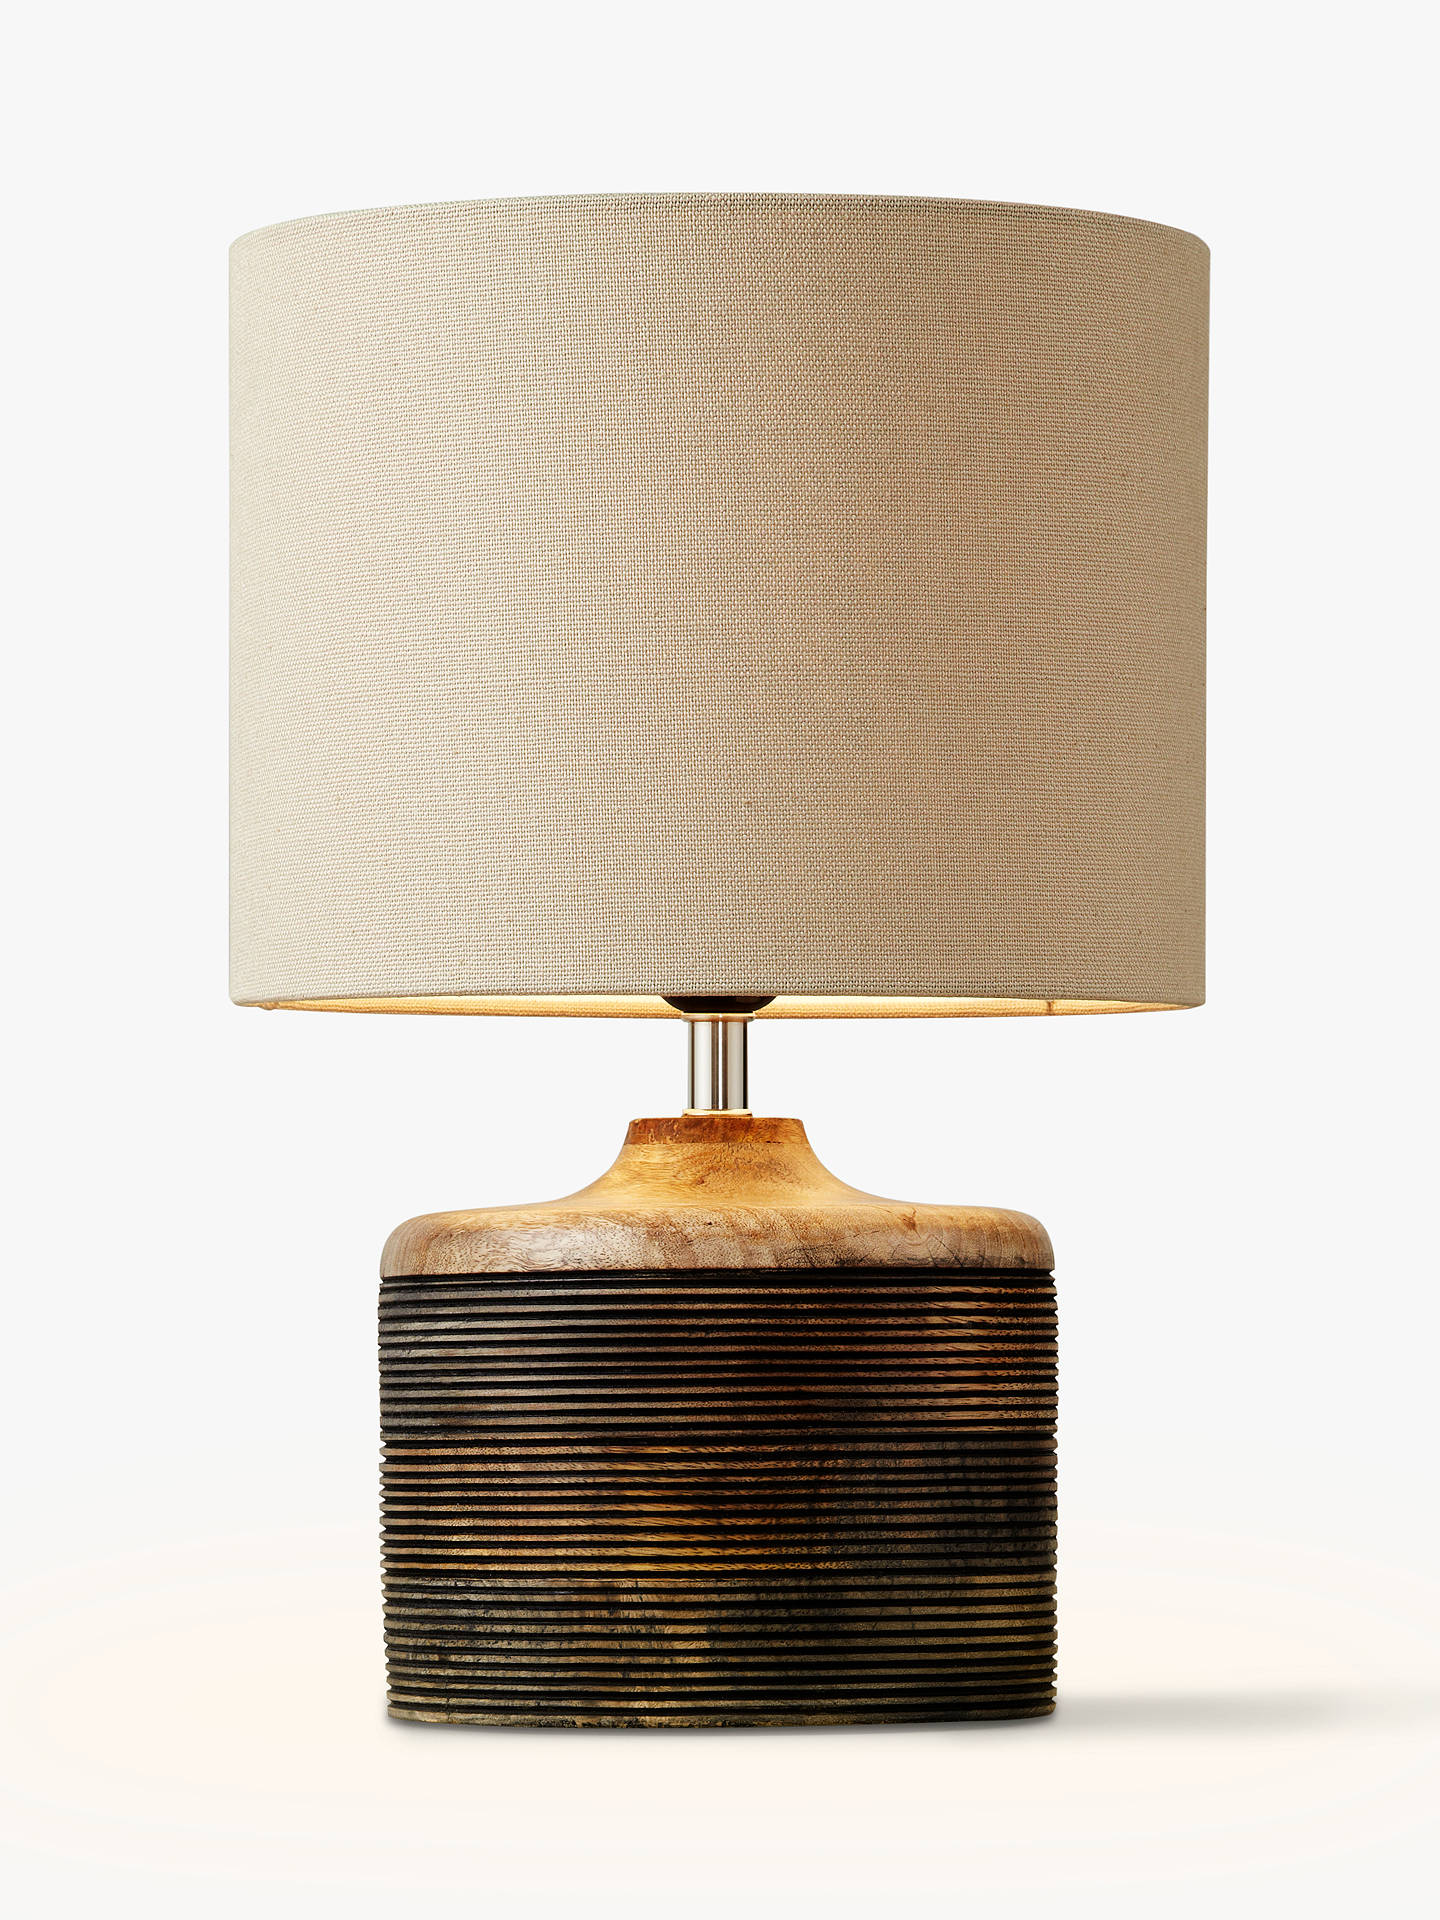 Buyjohn lewis partners ira ribbed wooden table lamp natural online at johnlewis